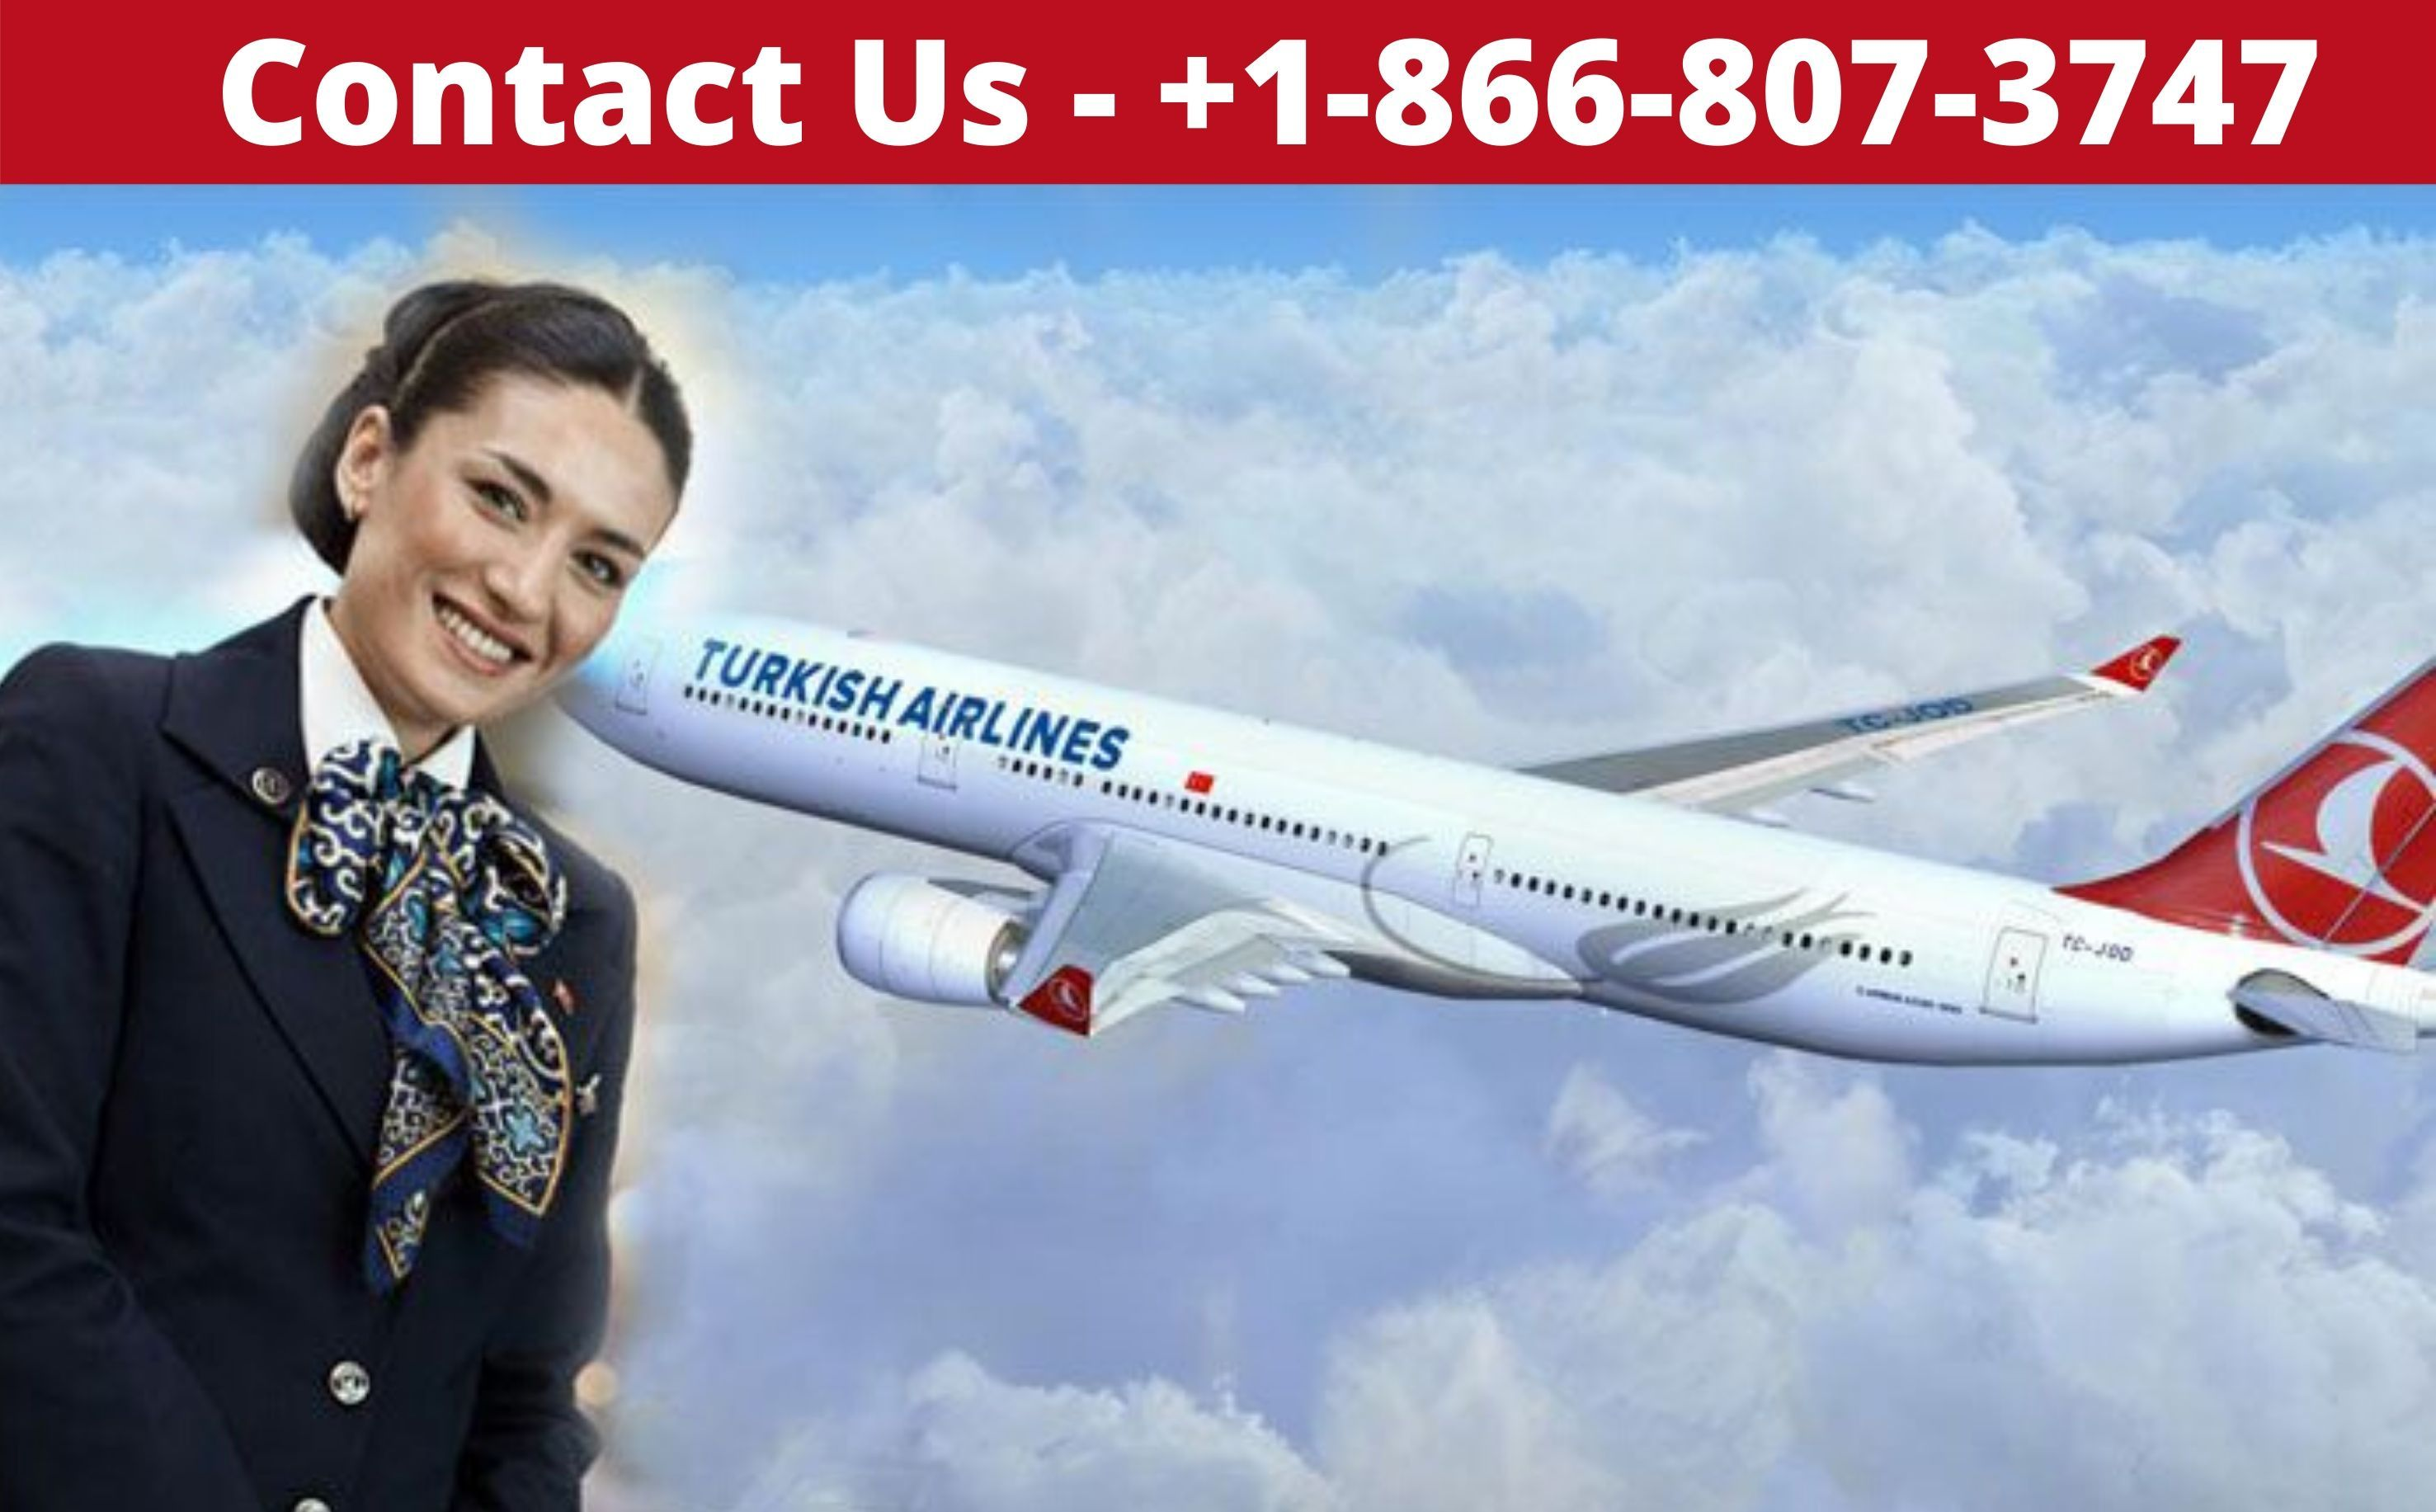 Turkish Airlines Reservations 1 877 209 1629 Booking Number In Usa Turkish Airlines Airline Reservations Airlines